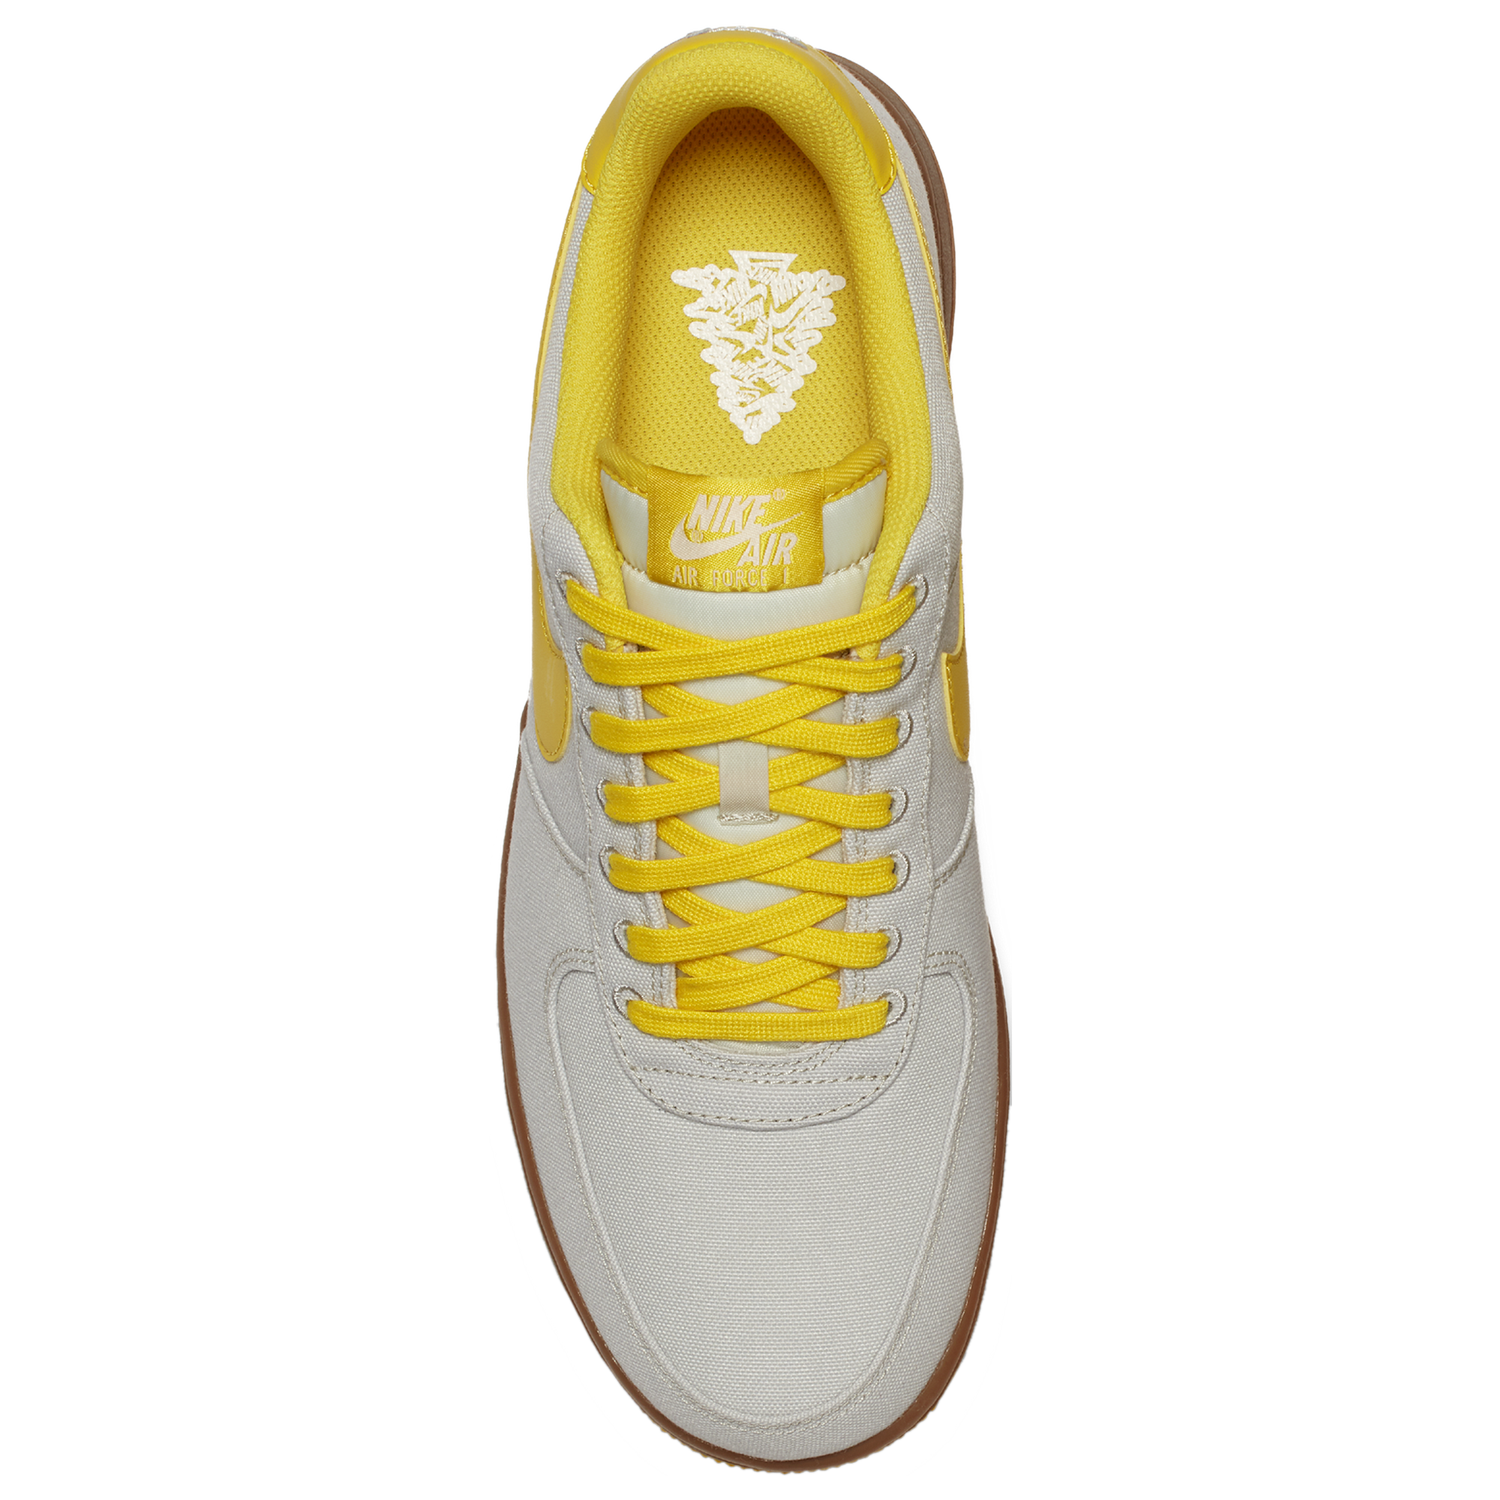 norway nike air force 1 yellow yellow 35509 efe96